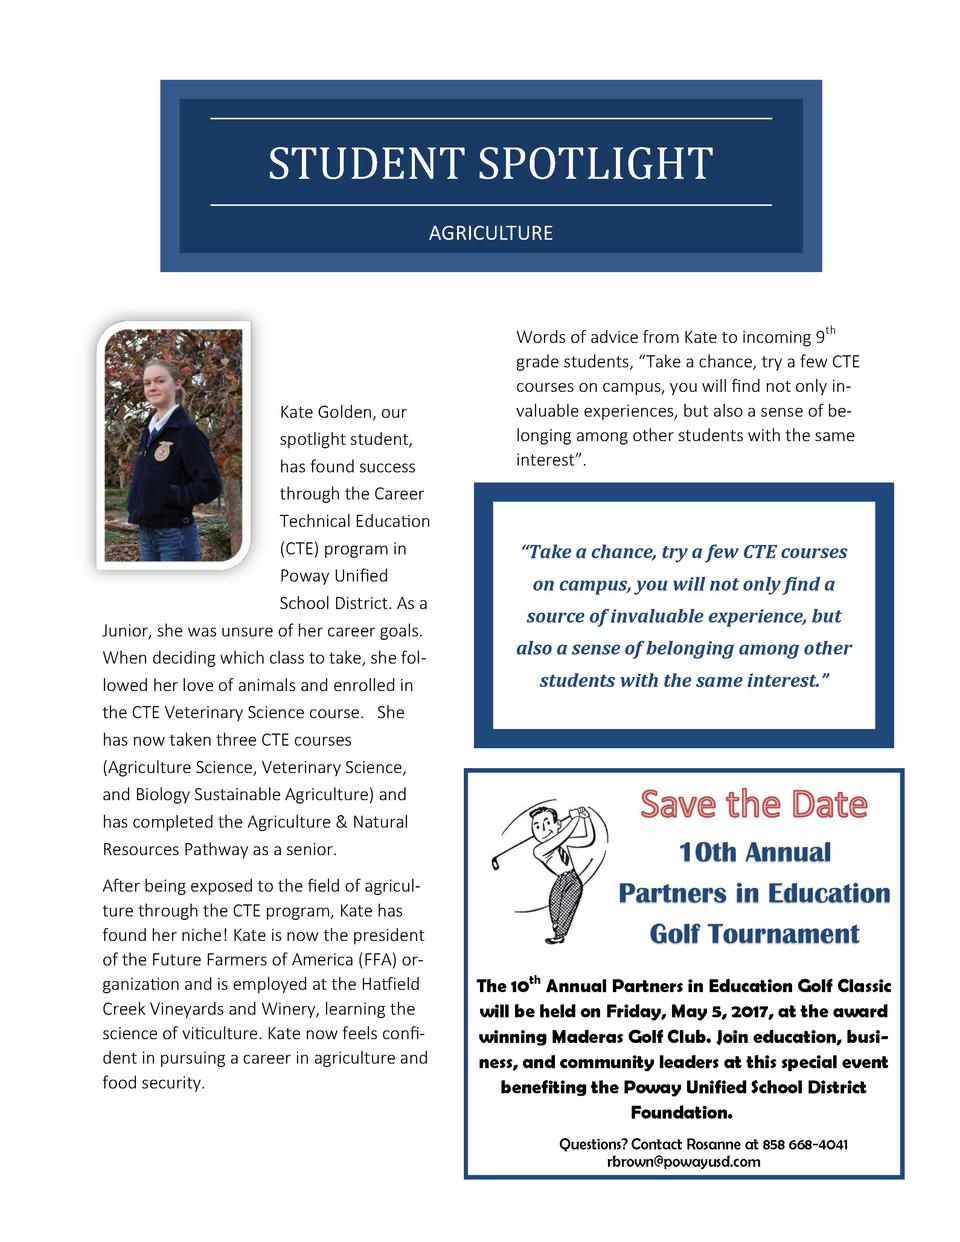 STUDENT SPOTLIGHT AGRICULTURE  Kate Golden, our spotlight student, has found success through the Career Technical Educatio...